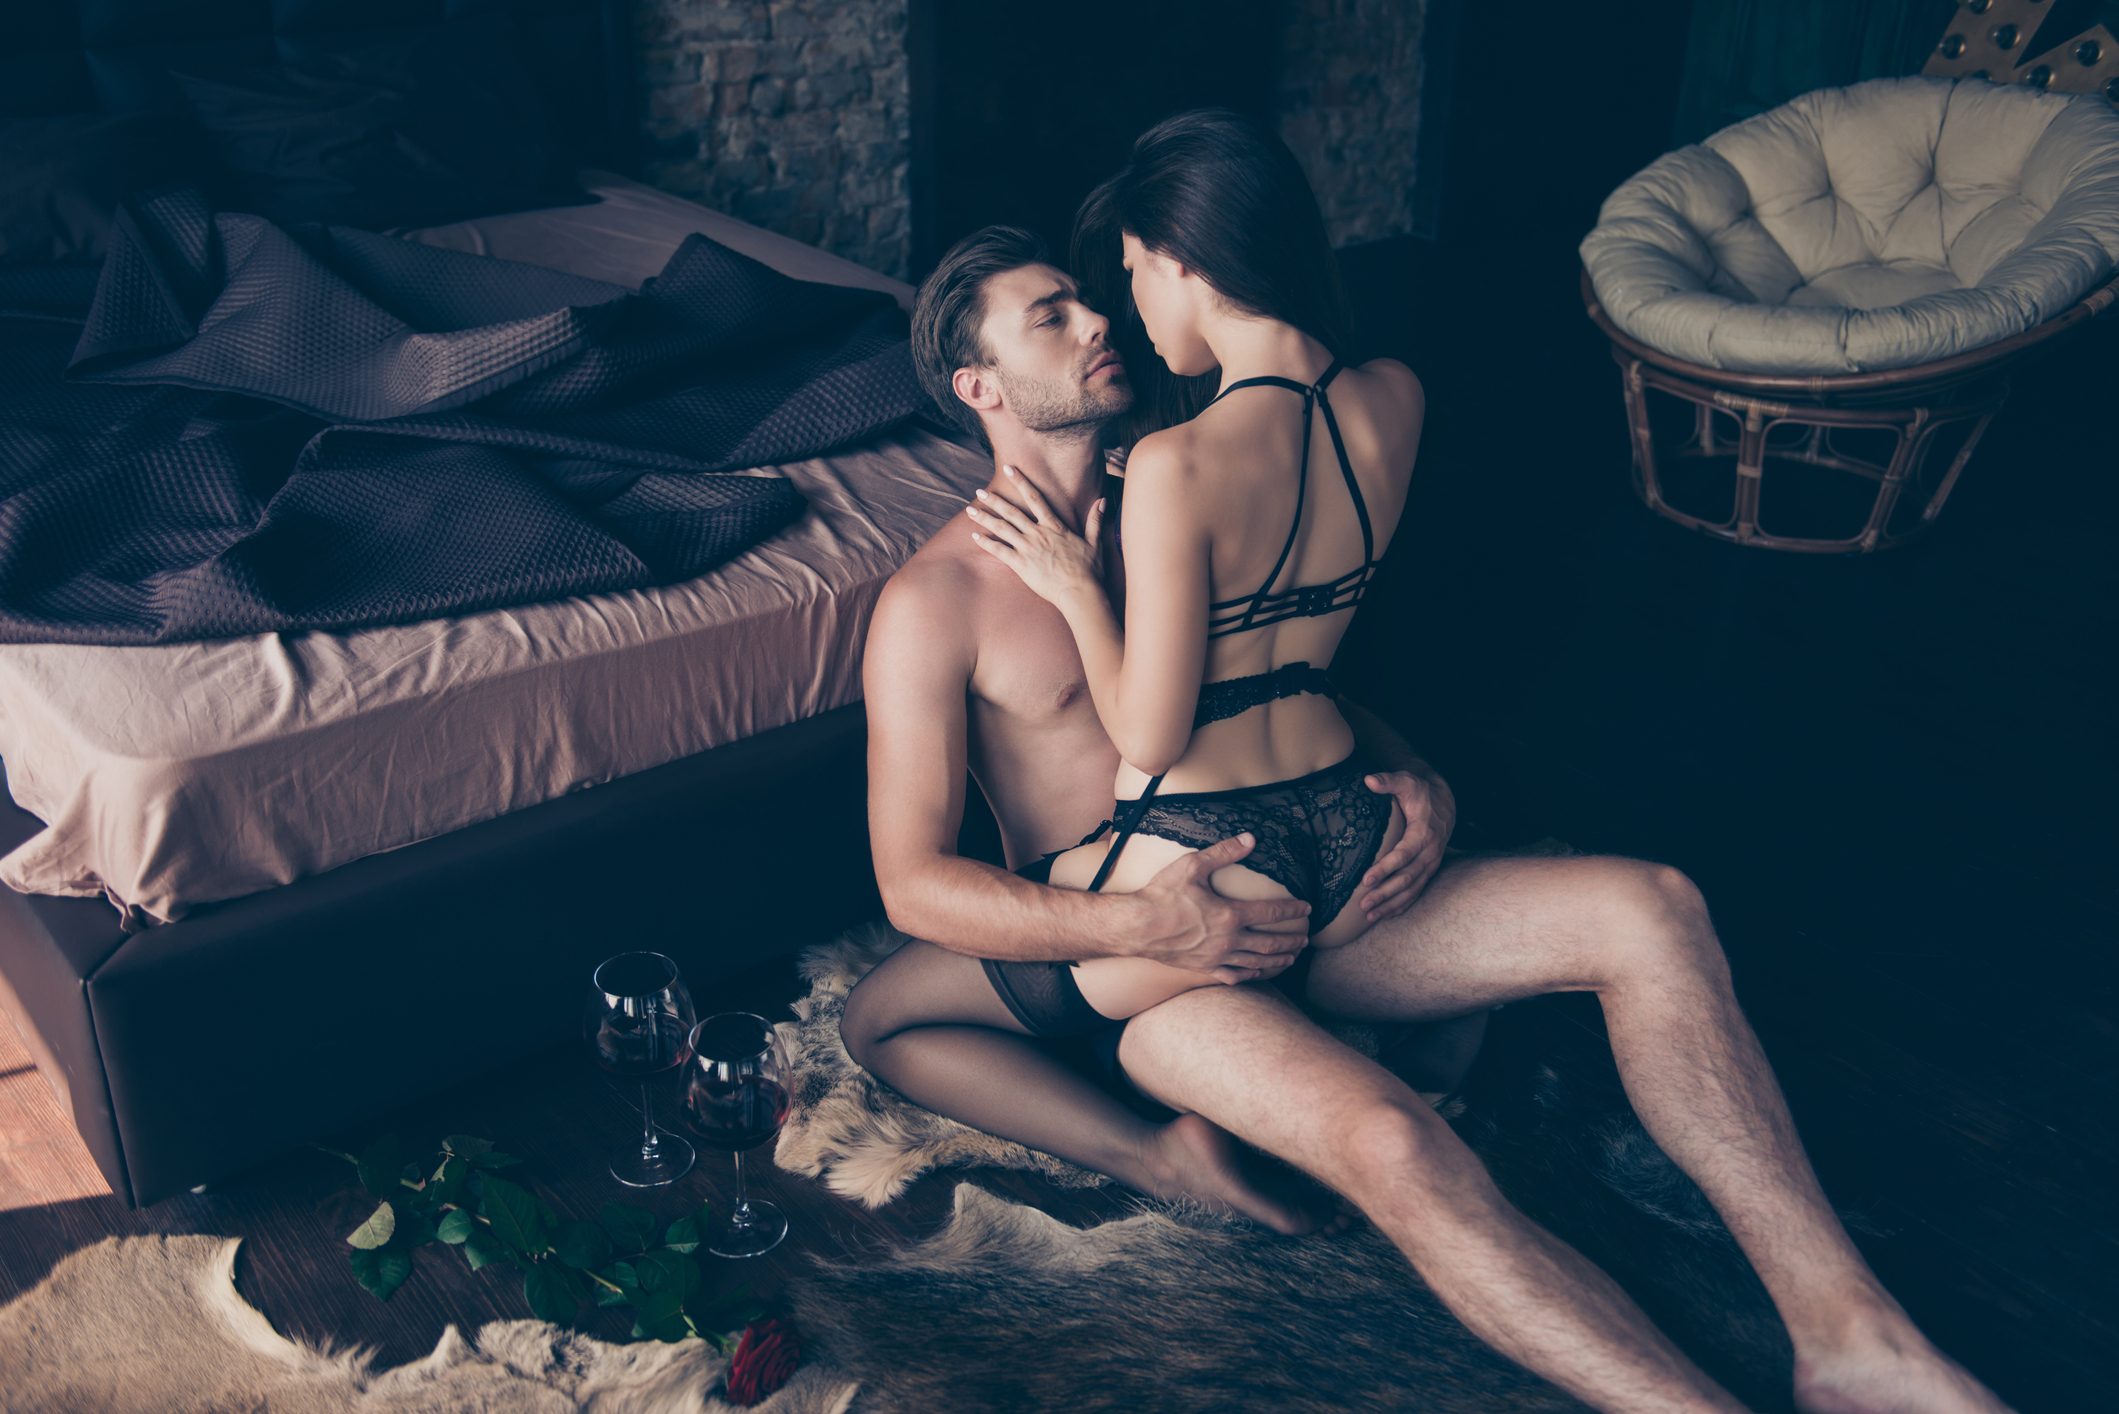 Valentine's day. Rear view of booty hips legs in lace black fashionable underwear set, the masculine hot handsome man is hugging the woman on him, they are sitting on floor in bedroom, dark bedsheet